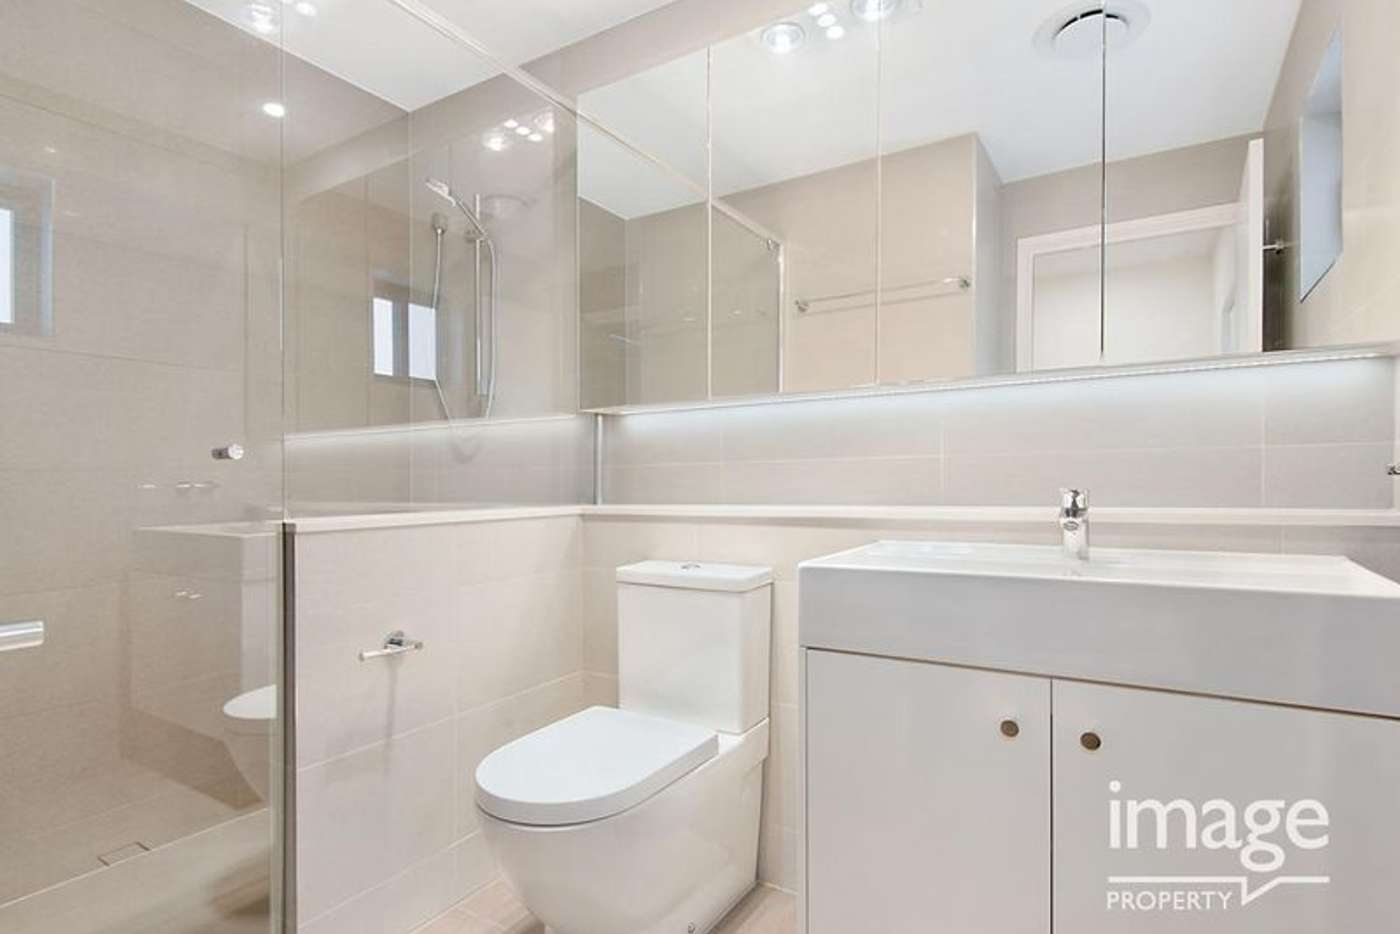 Seventh view of Homely house listing, 2301/23 Boundary Road, Bardon QLD 4065